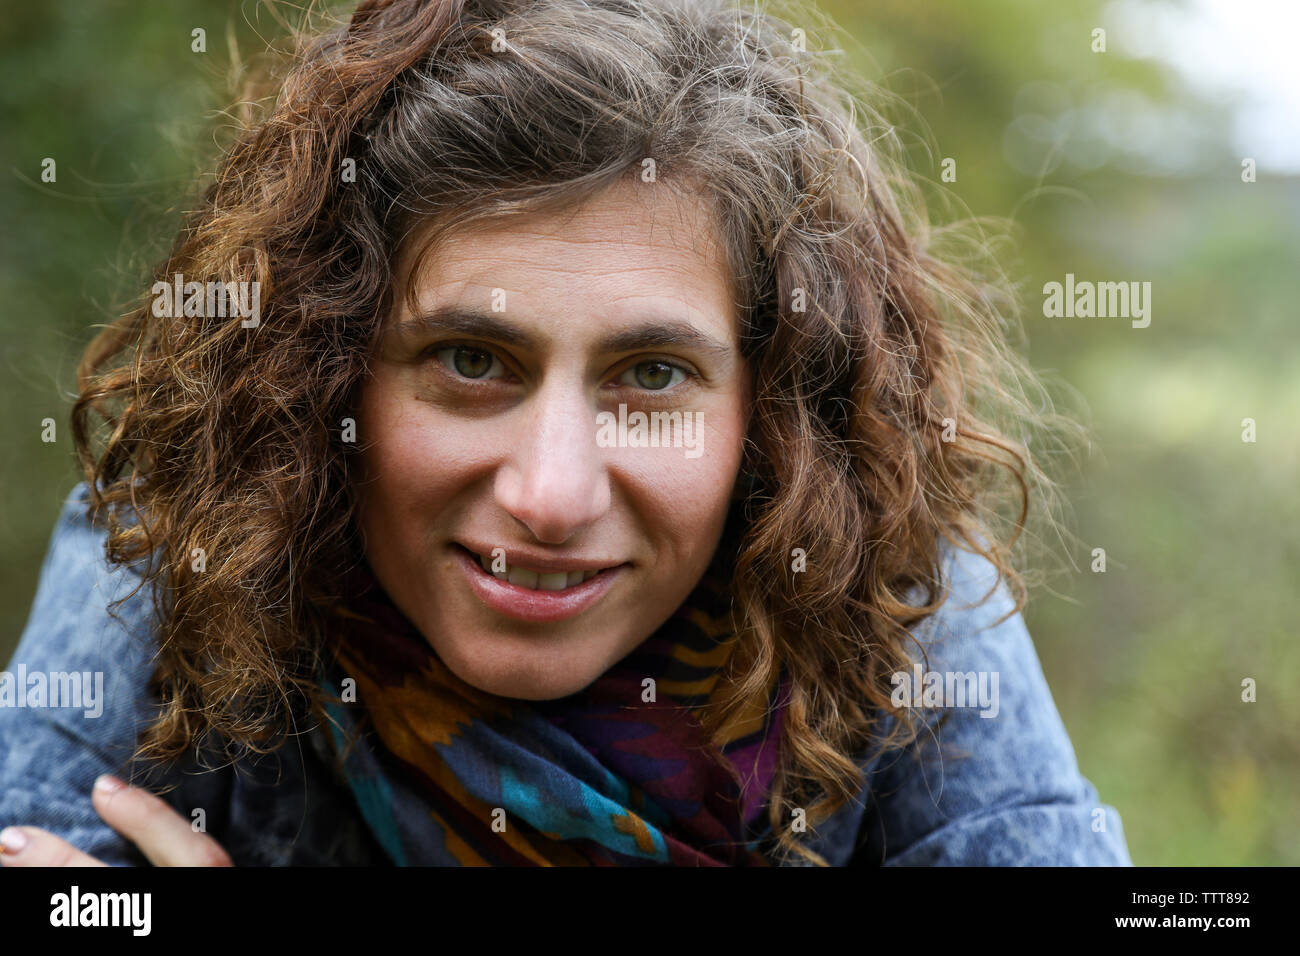 close up of woman with curly brown hair wearing scarf Stock Photo